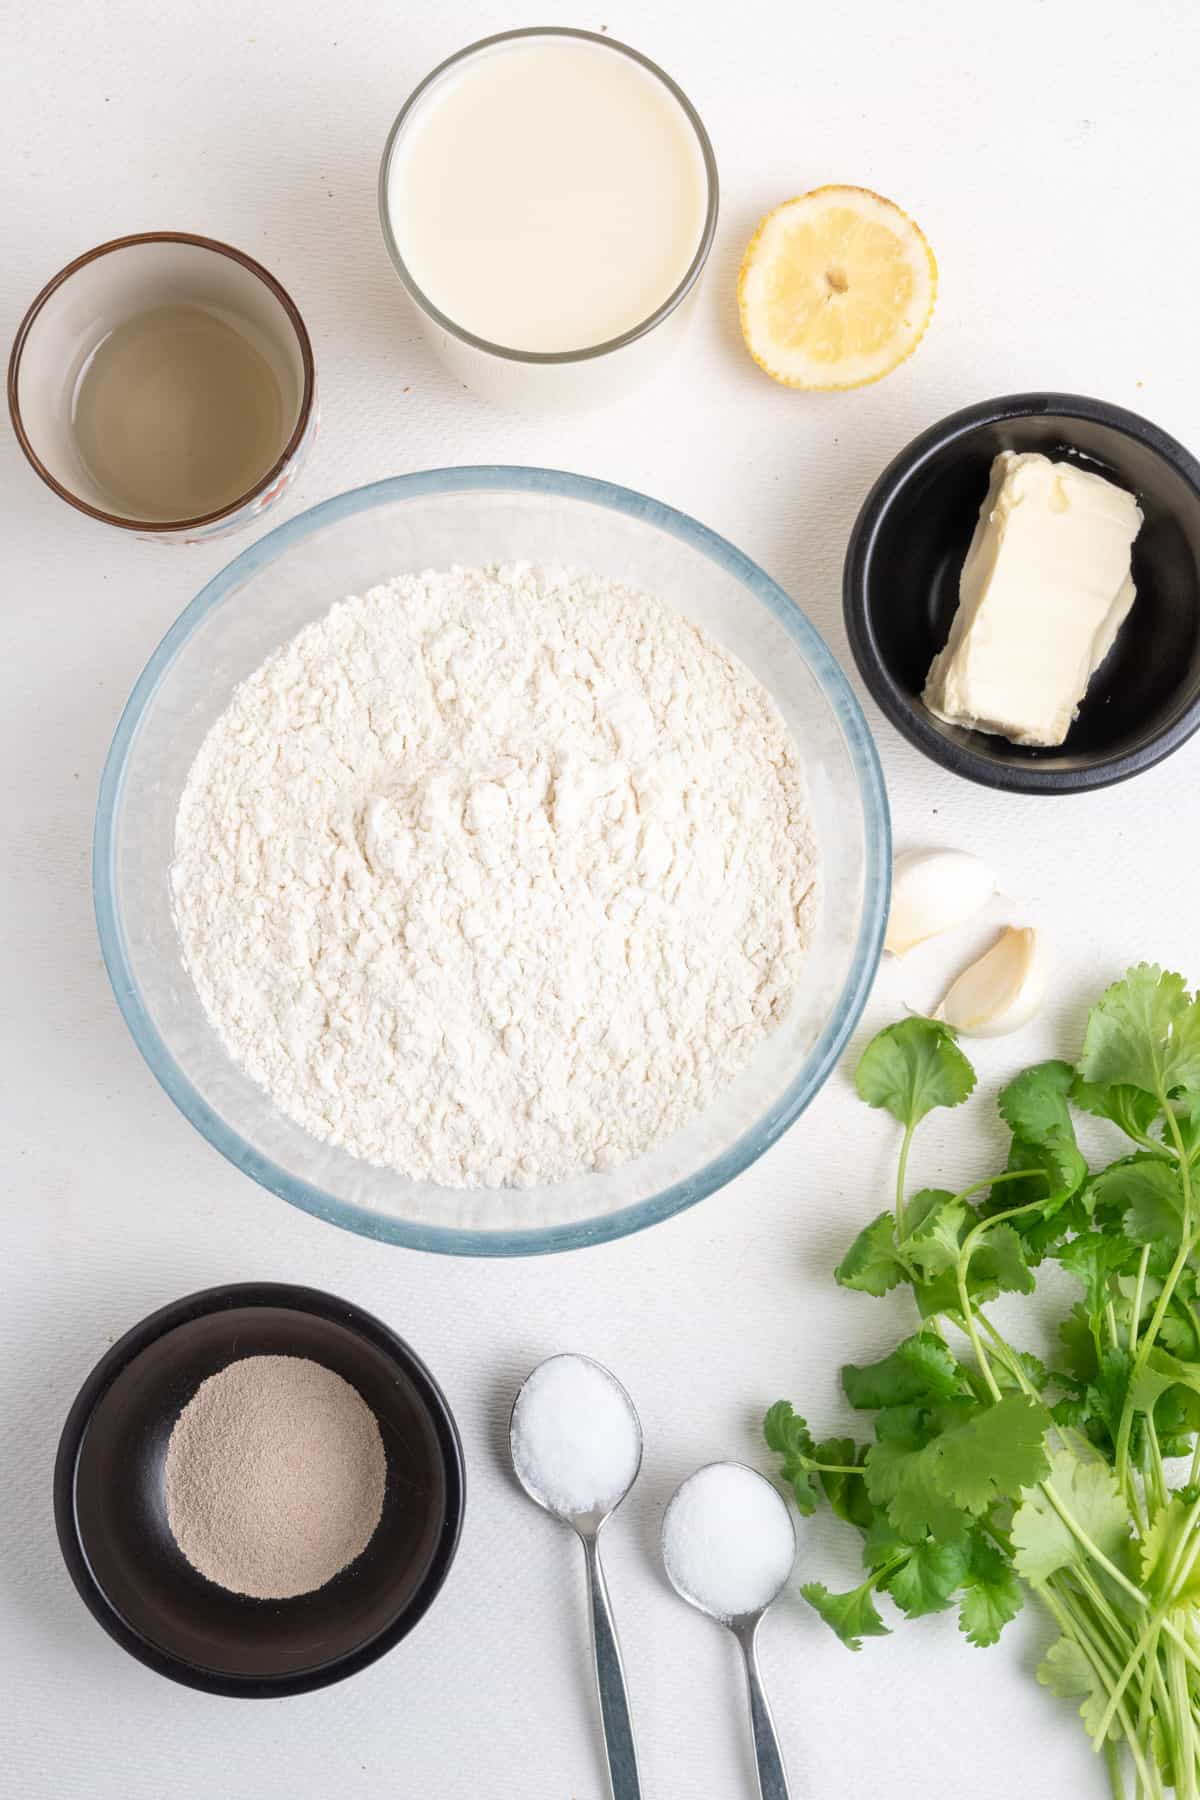 The ingredients for garlic and coriander naan: a bowl of plain flour surrounded by smaller pots of dried yeast, soy milk, vegetable oil, as well as a teaspoon each of sugar and salt, a slice of lemon, and some vegan butter, fresh coriander and two garlic cloves.